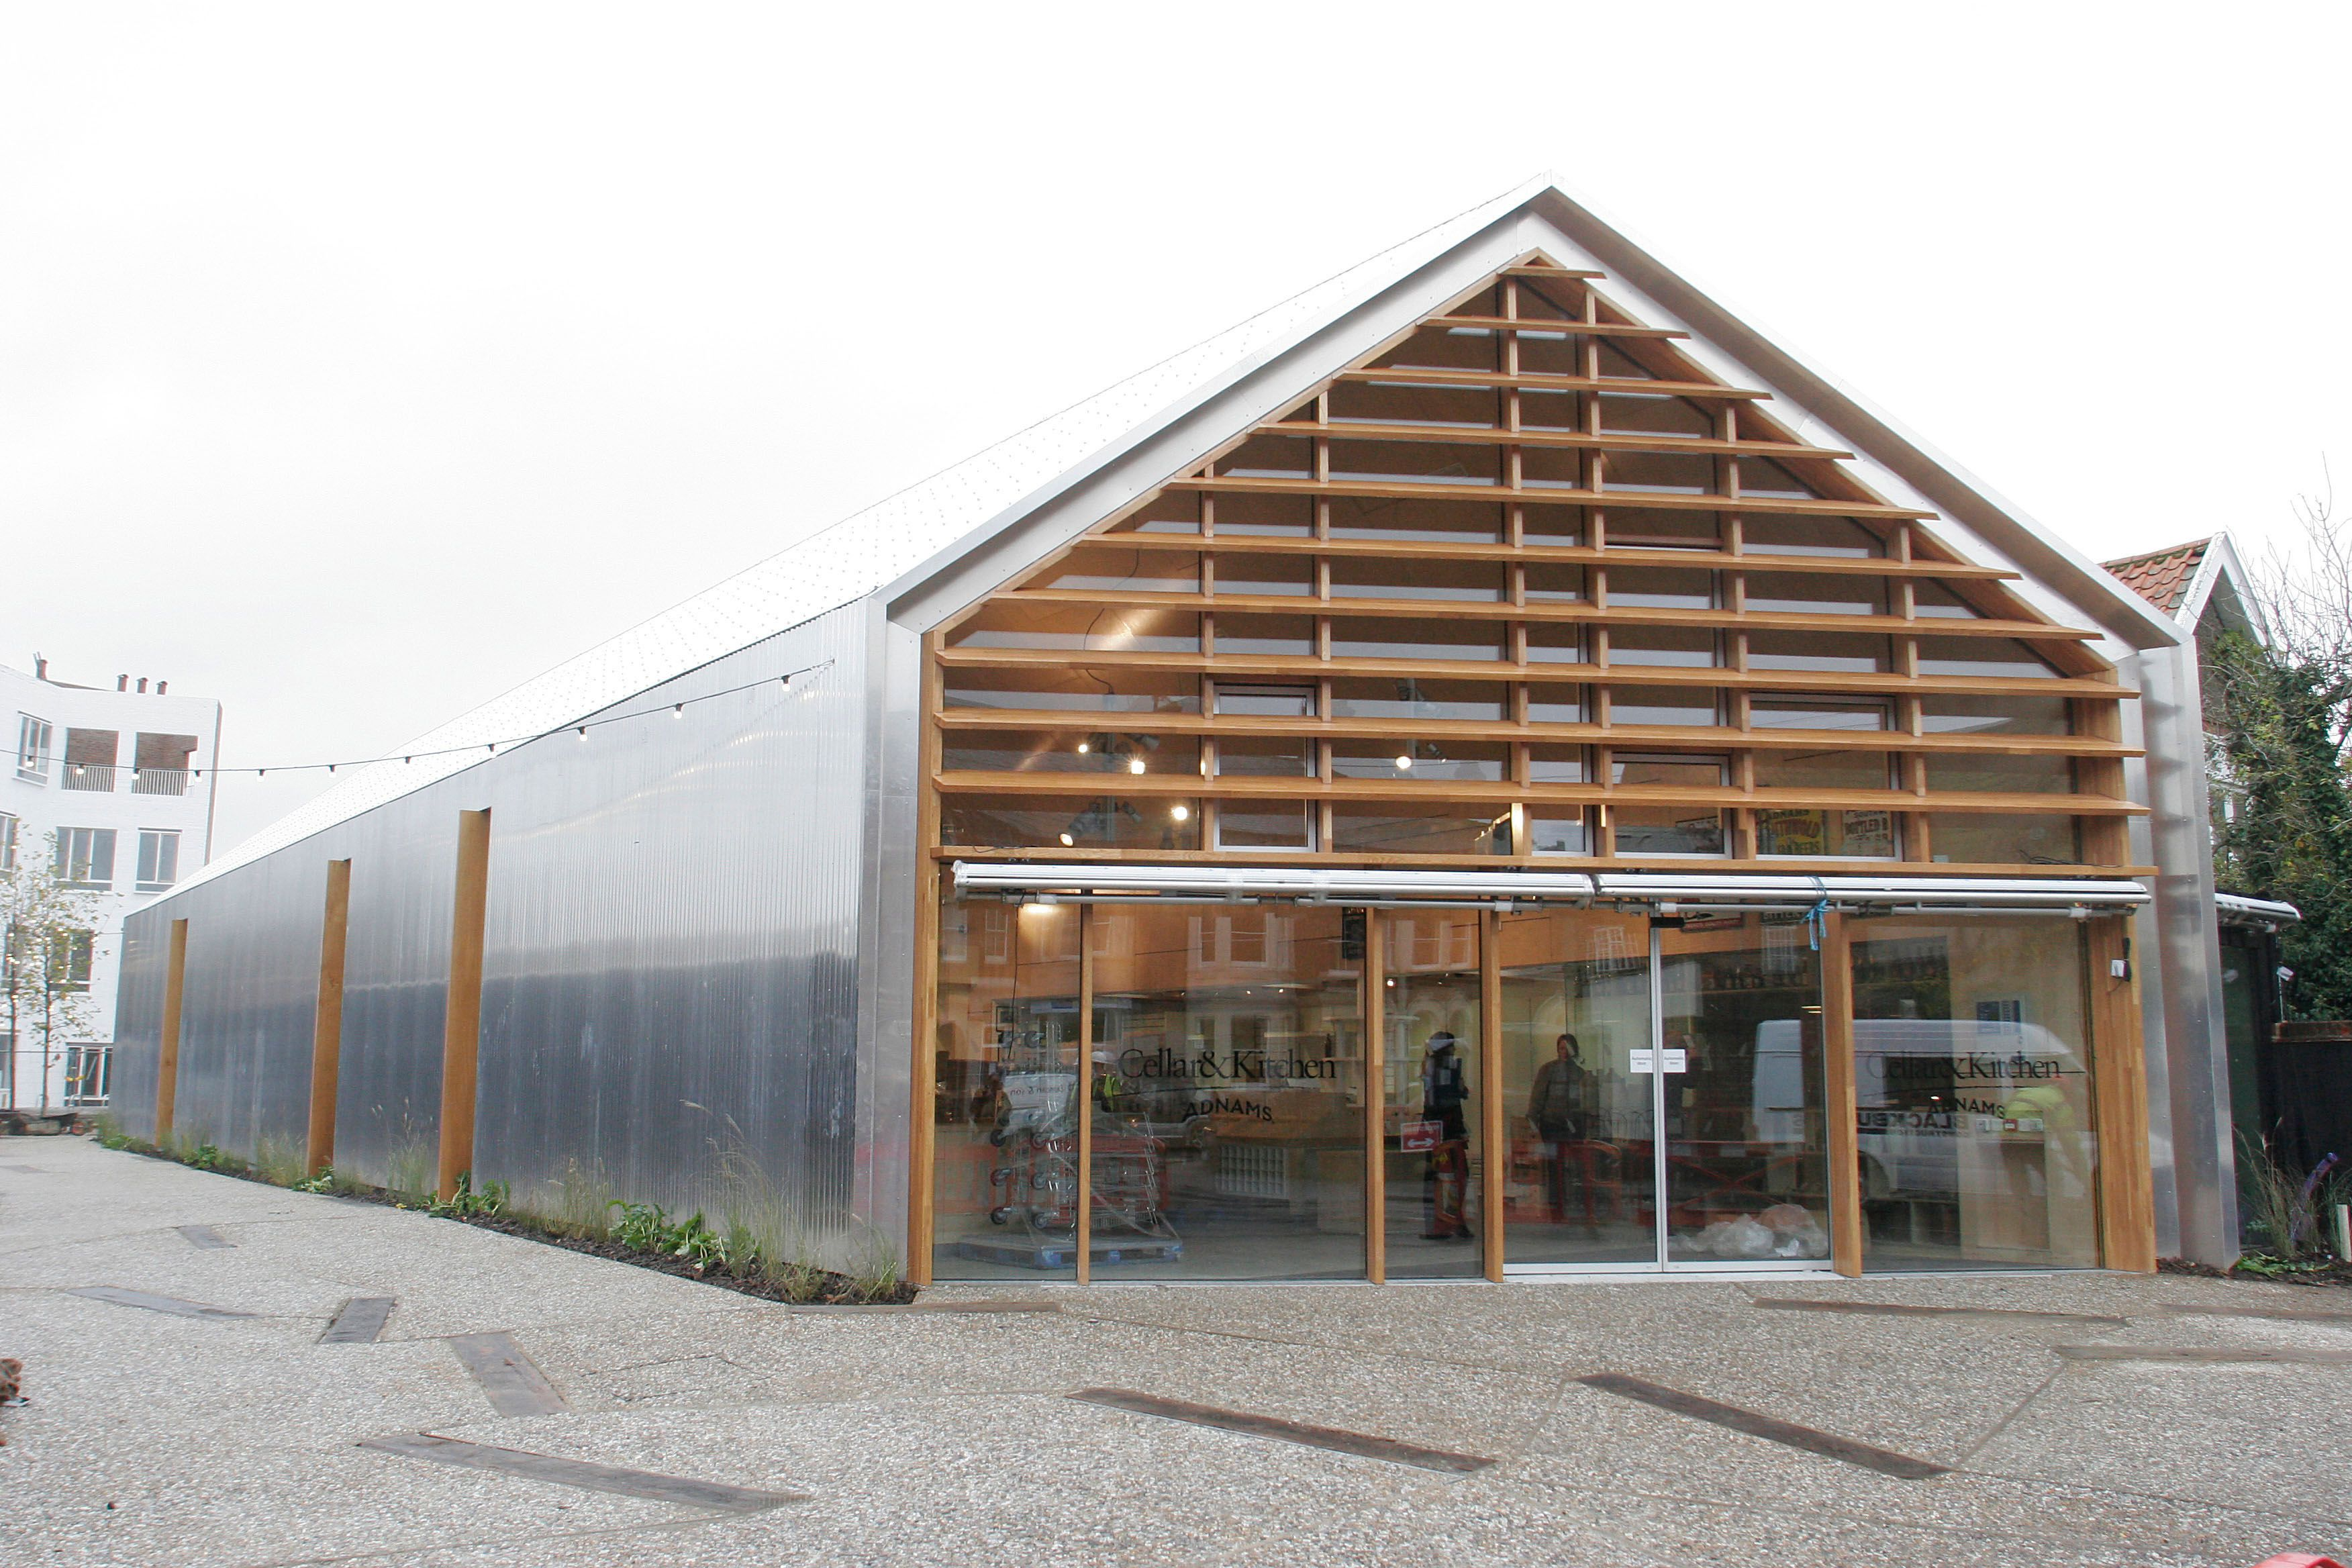 Adnams Flagship Cellar Kitchen Store Warehouses Architecture Industrial Architecture Factory Architecture